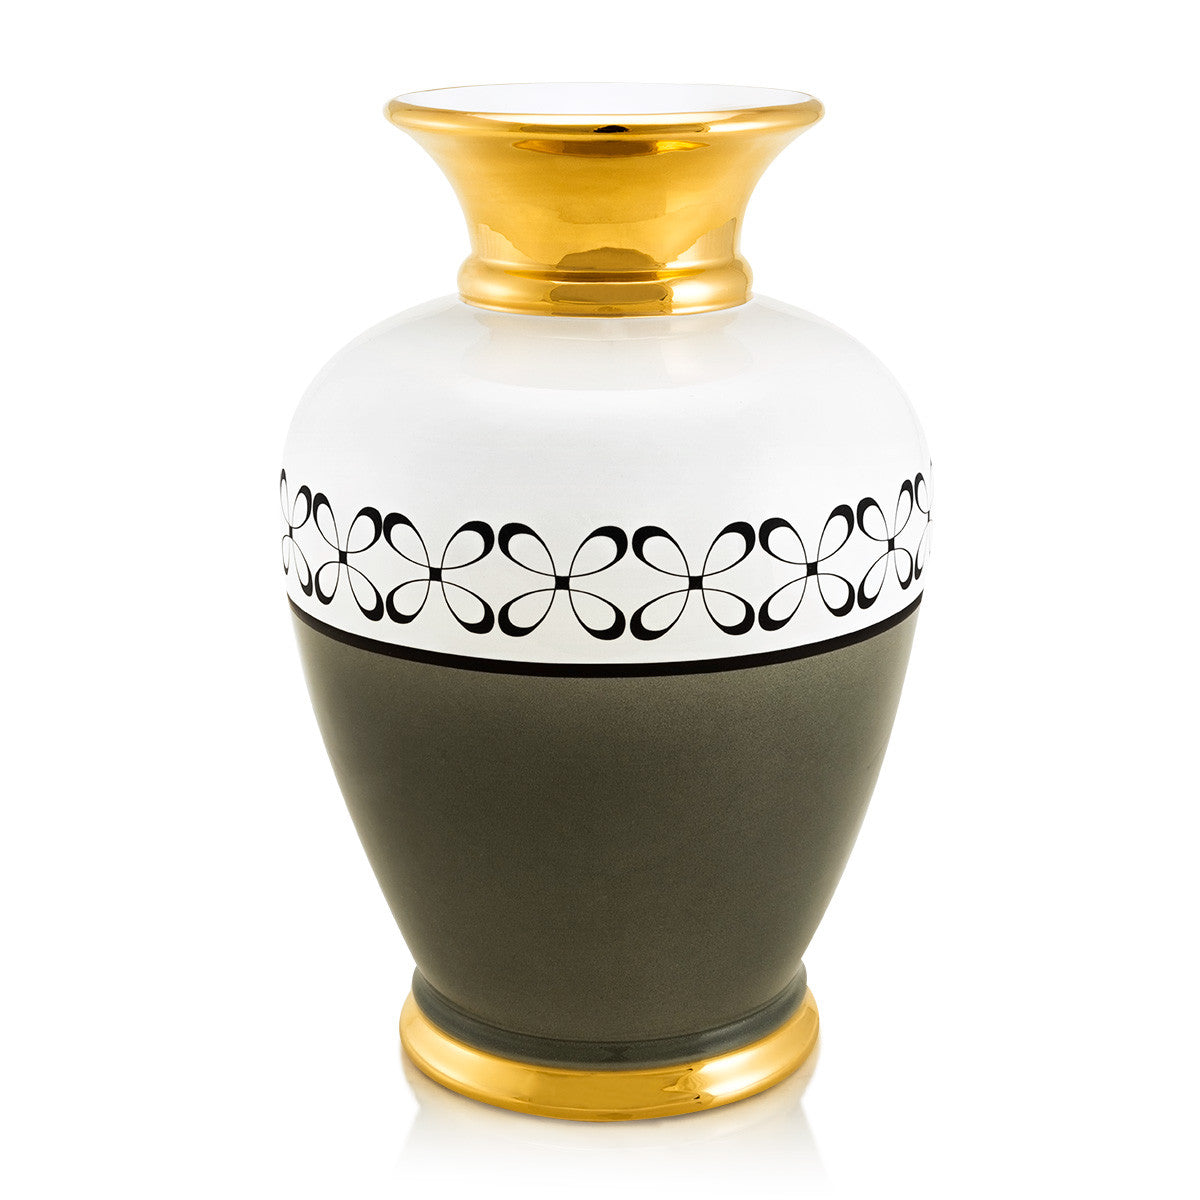 ceramic porcelain green vase finished in pure gold with modern decor handmade in Italy